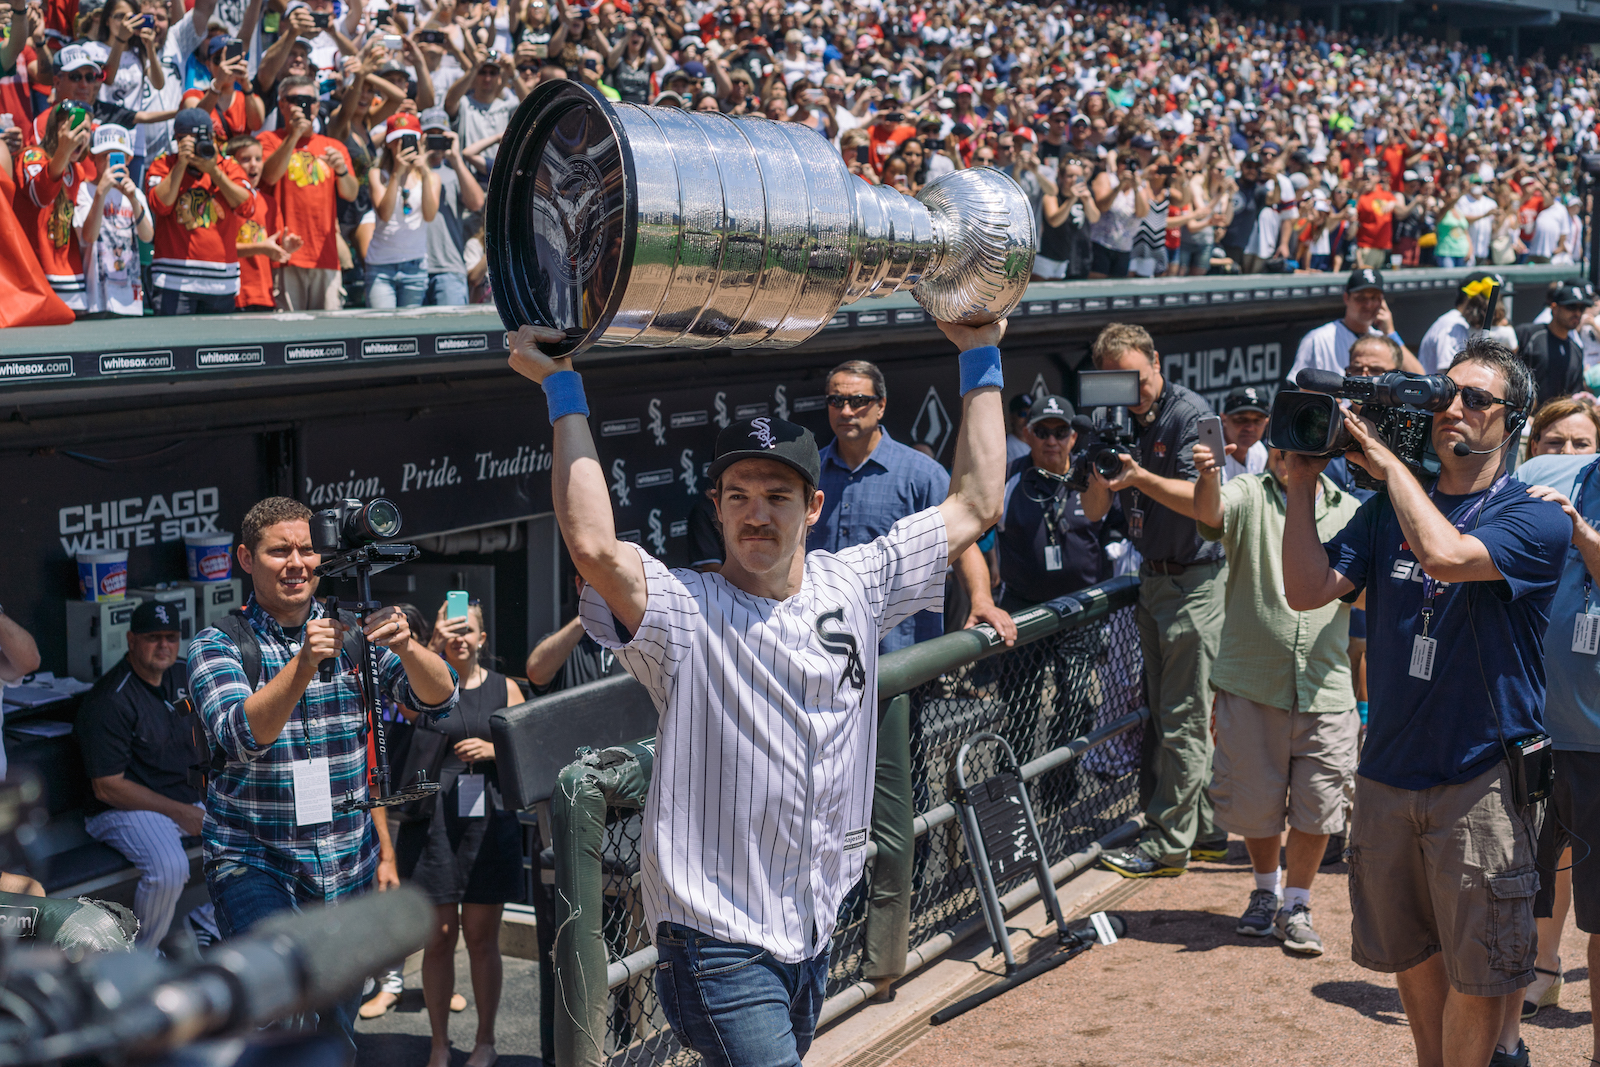 Andrew Shaw. Lord Stanley's Cup. A proud city.